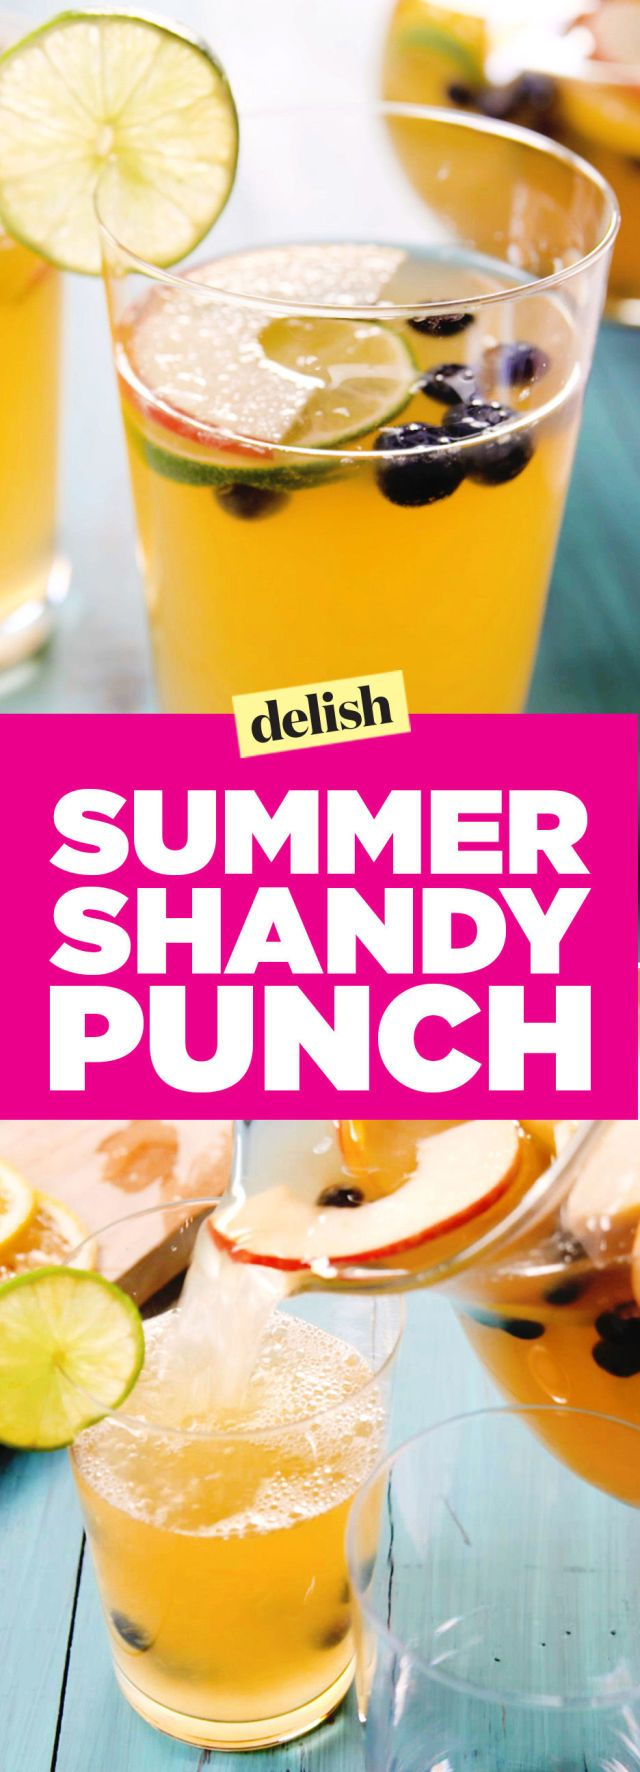 Summer Shandy Punch Is Our Favorite Way to Hydrate